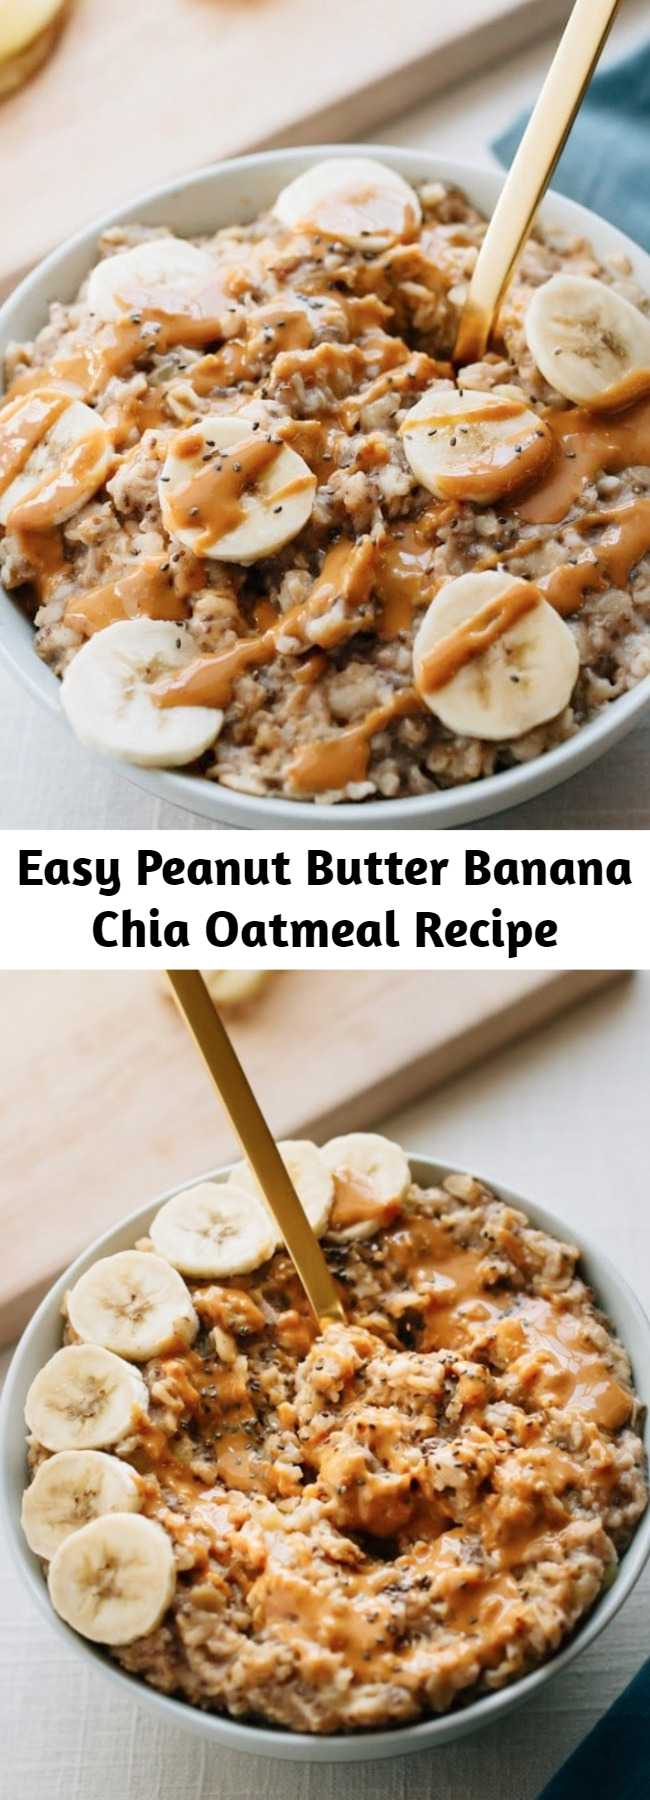 Easy Peanut Butter Banana Chia Oatmeal Recipe - The ultimate healthy breakfast recipe, this peanut butter banana oatmeal is creamy, voluminous and will keep you full all morning long! Plus it only takes about 10 minutes to make. Each bowl has around 370 calories, 17 grams of fiber (woot!), and 11 grams of protein.